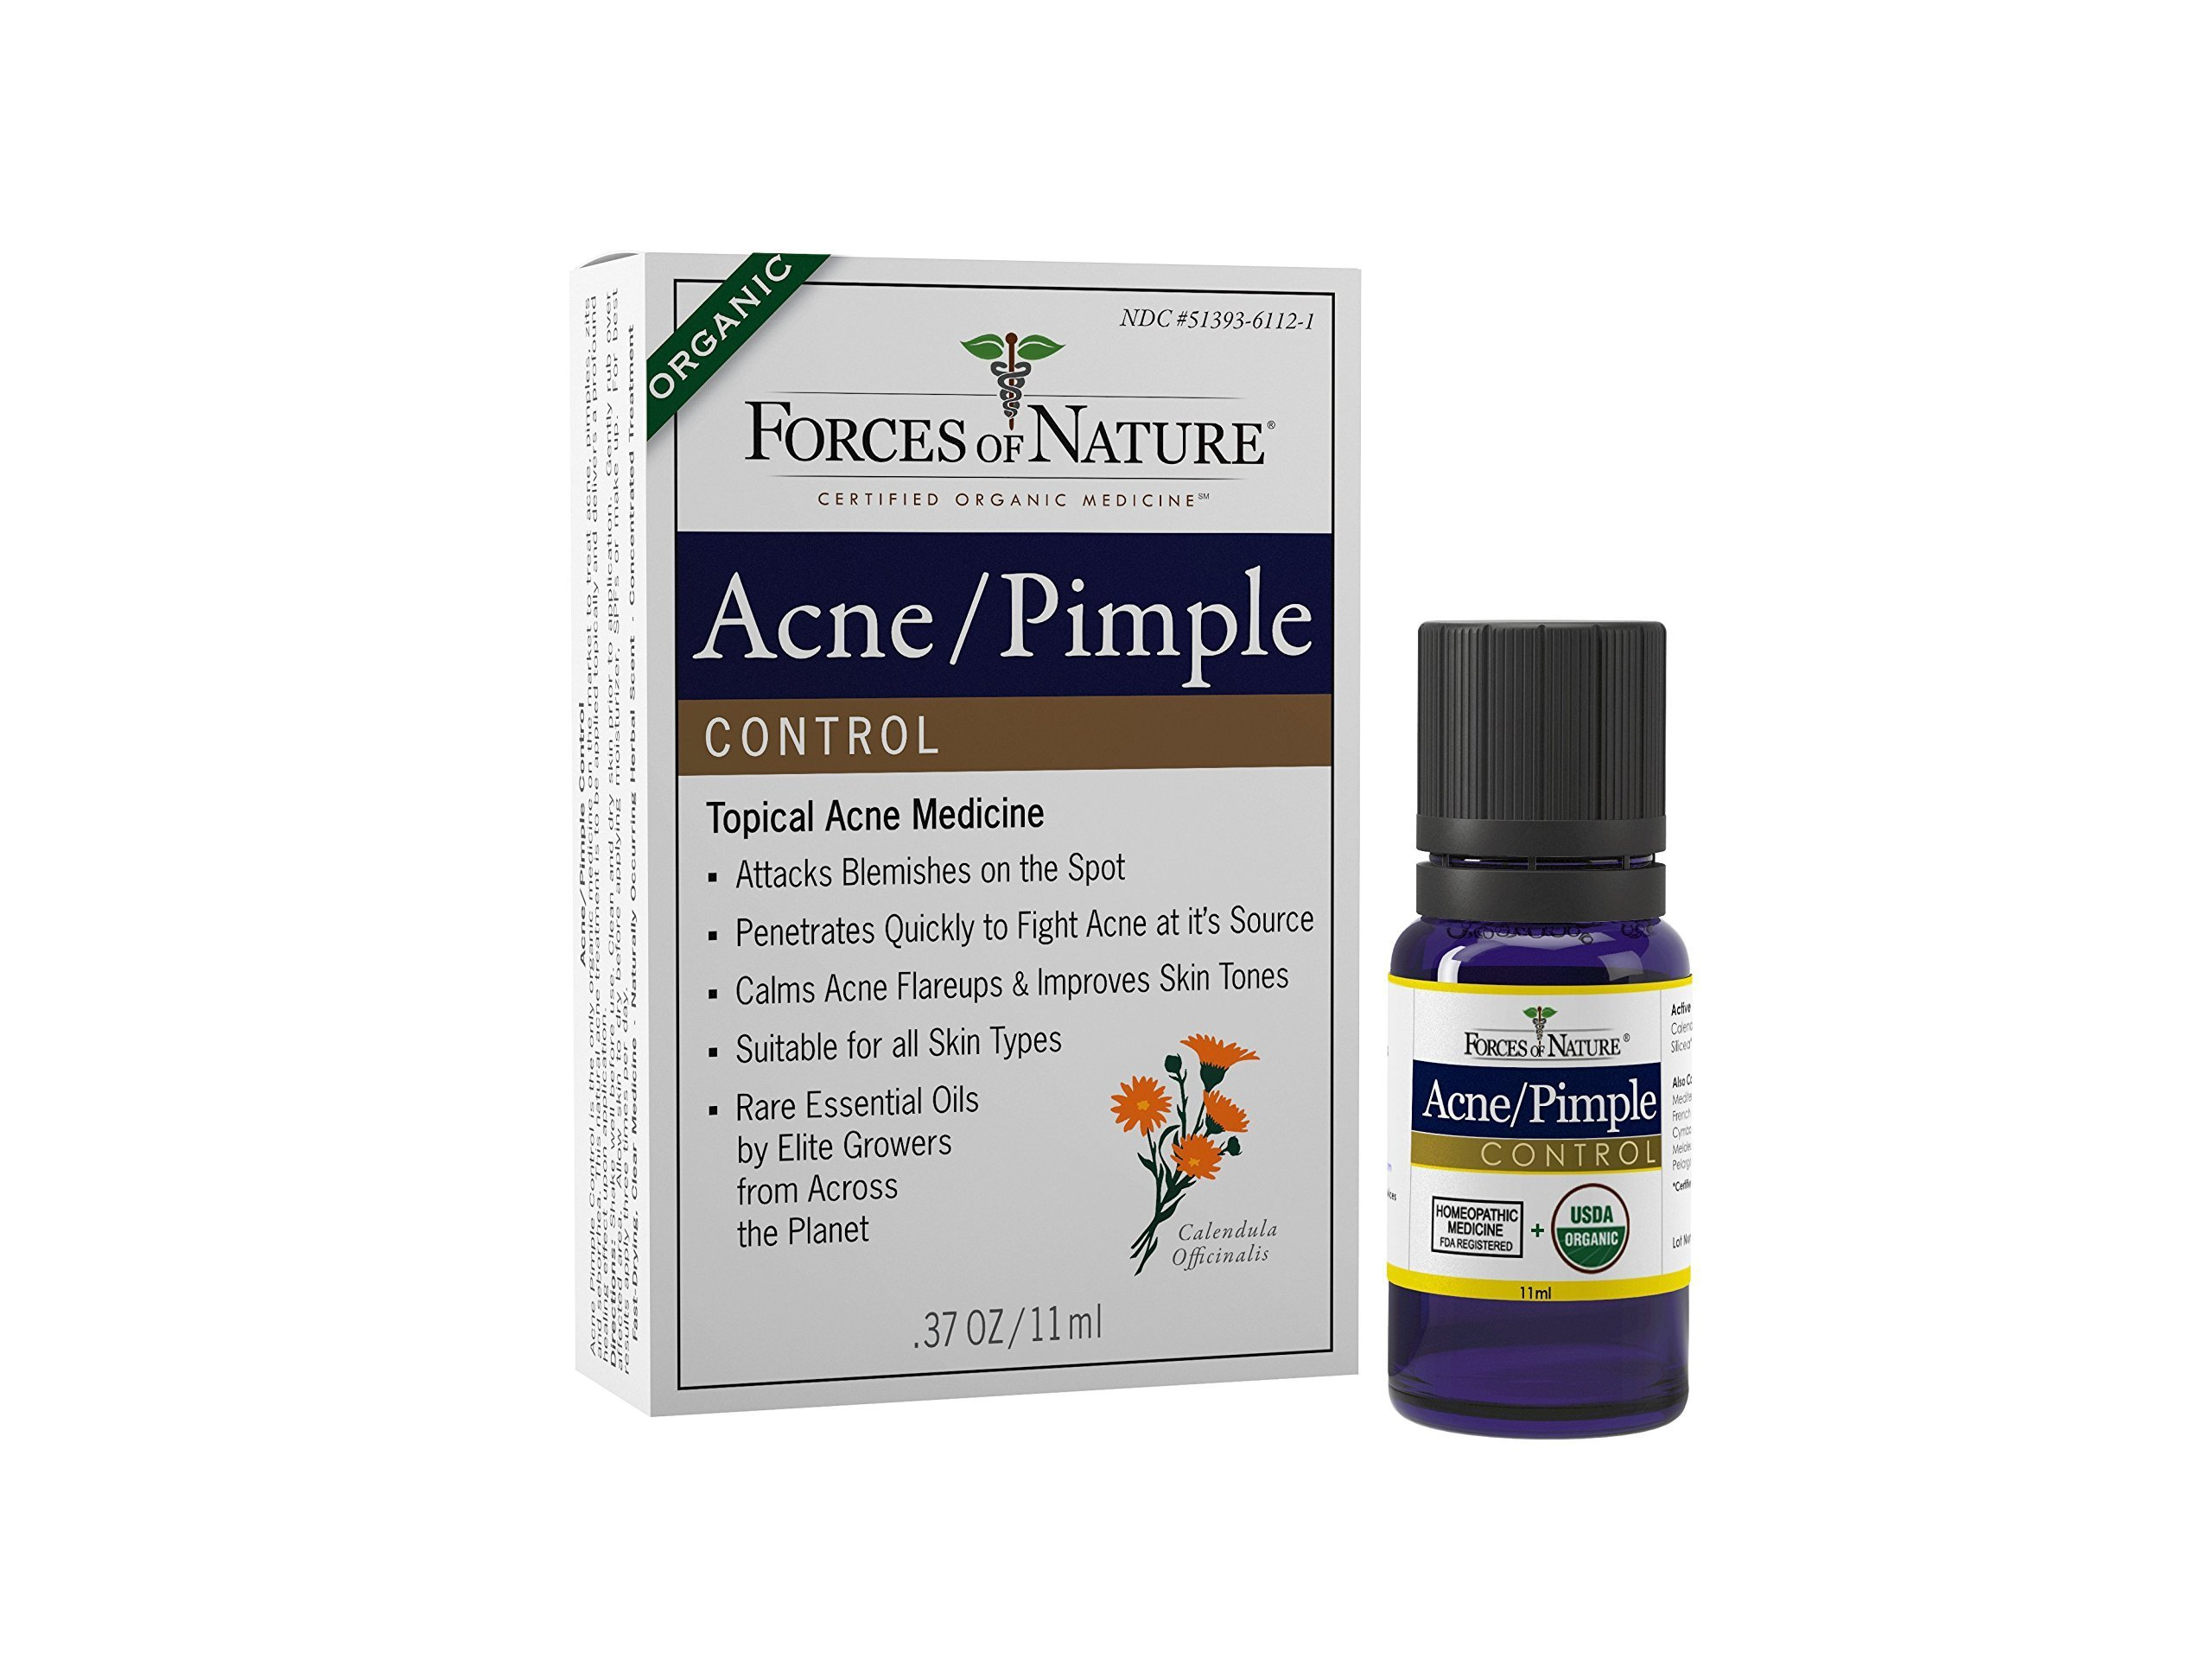 Forces of Nature Acne and Pimple Control, 11 ml